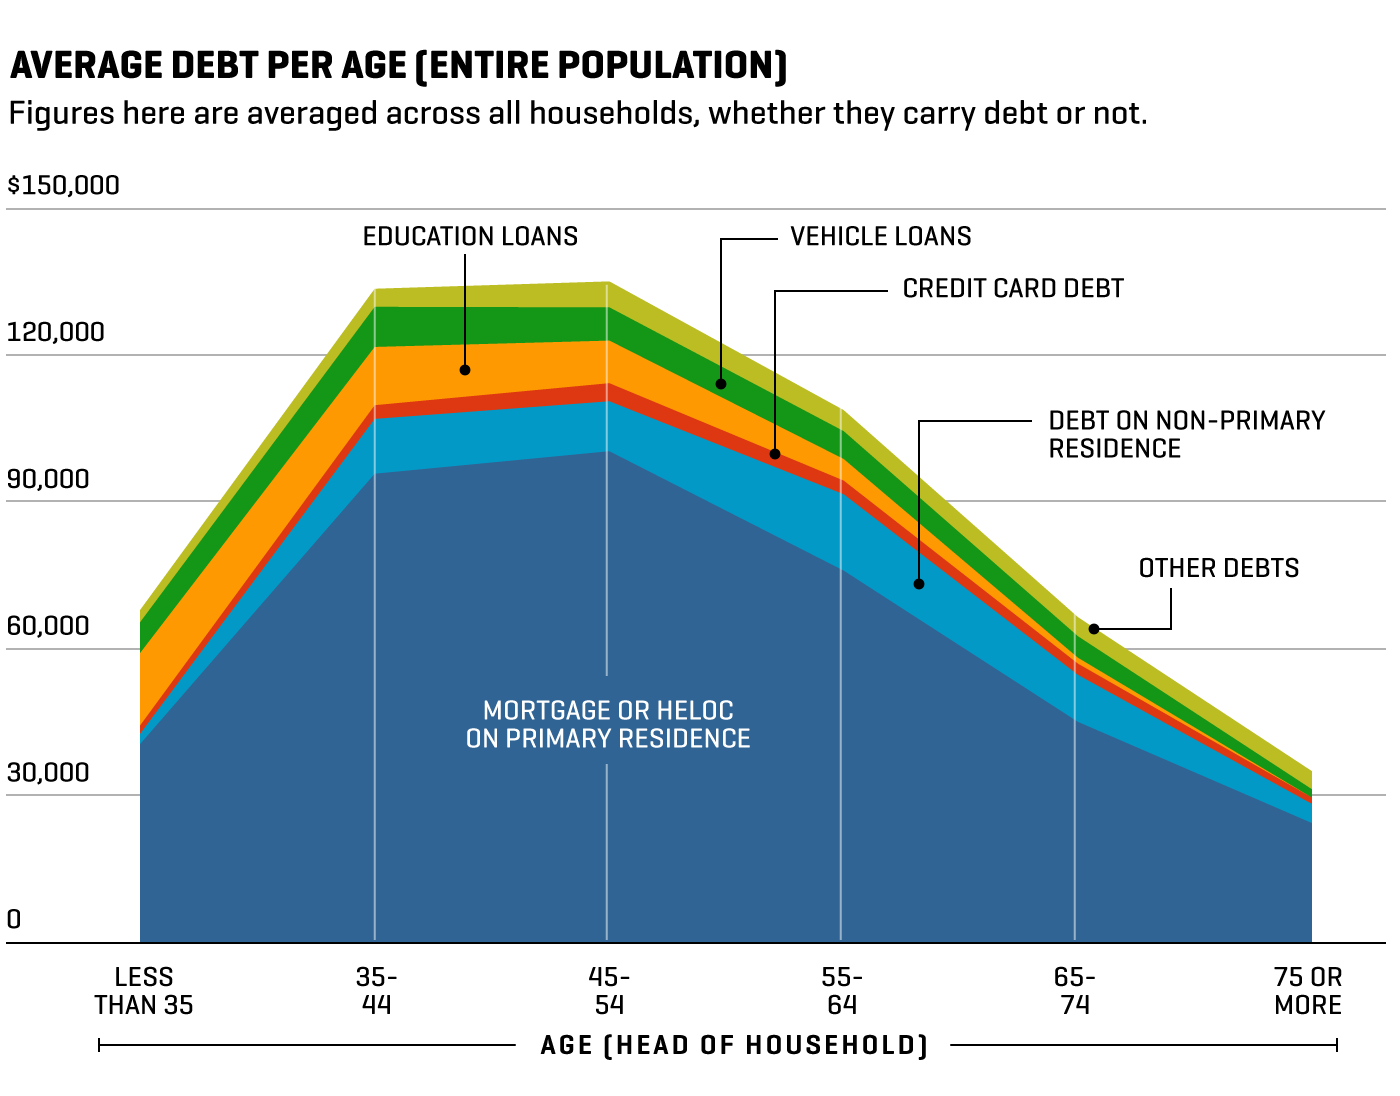 average-debt-per-age-entire-population.png